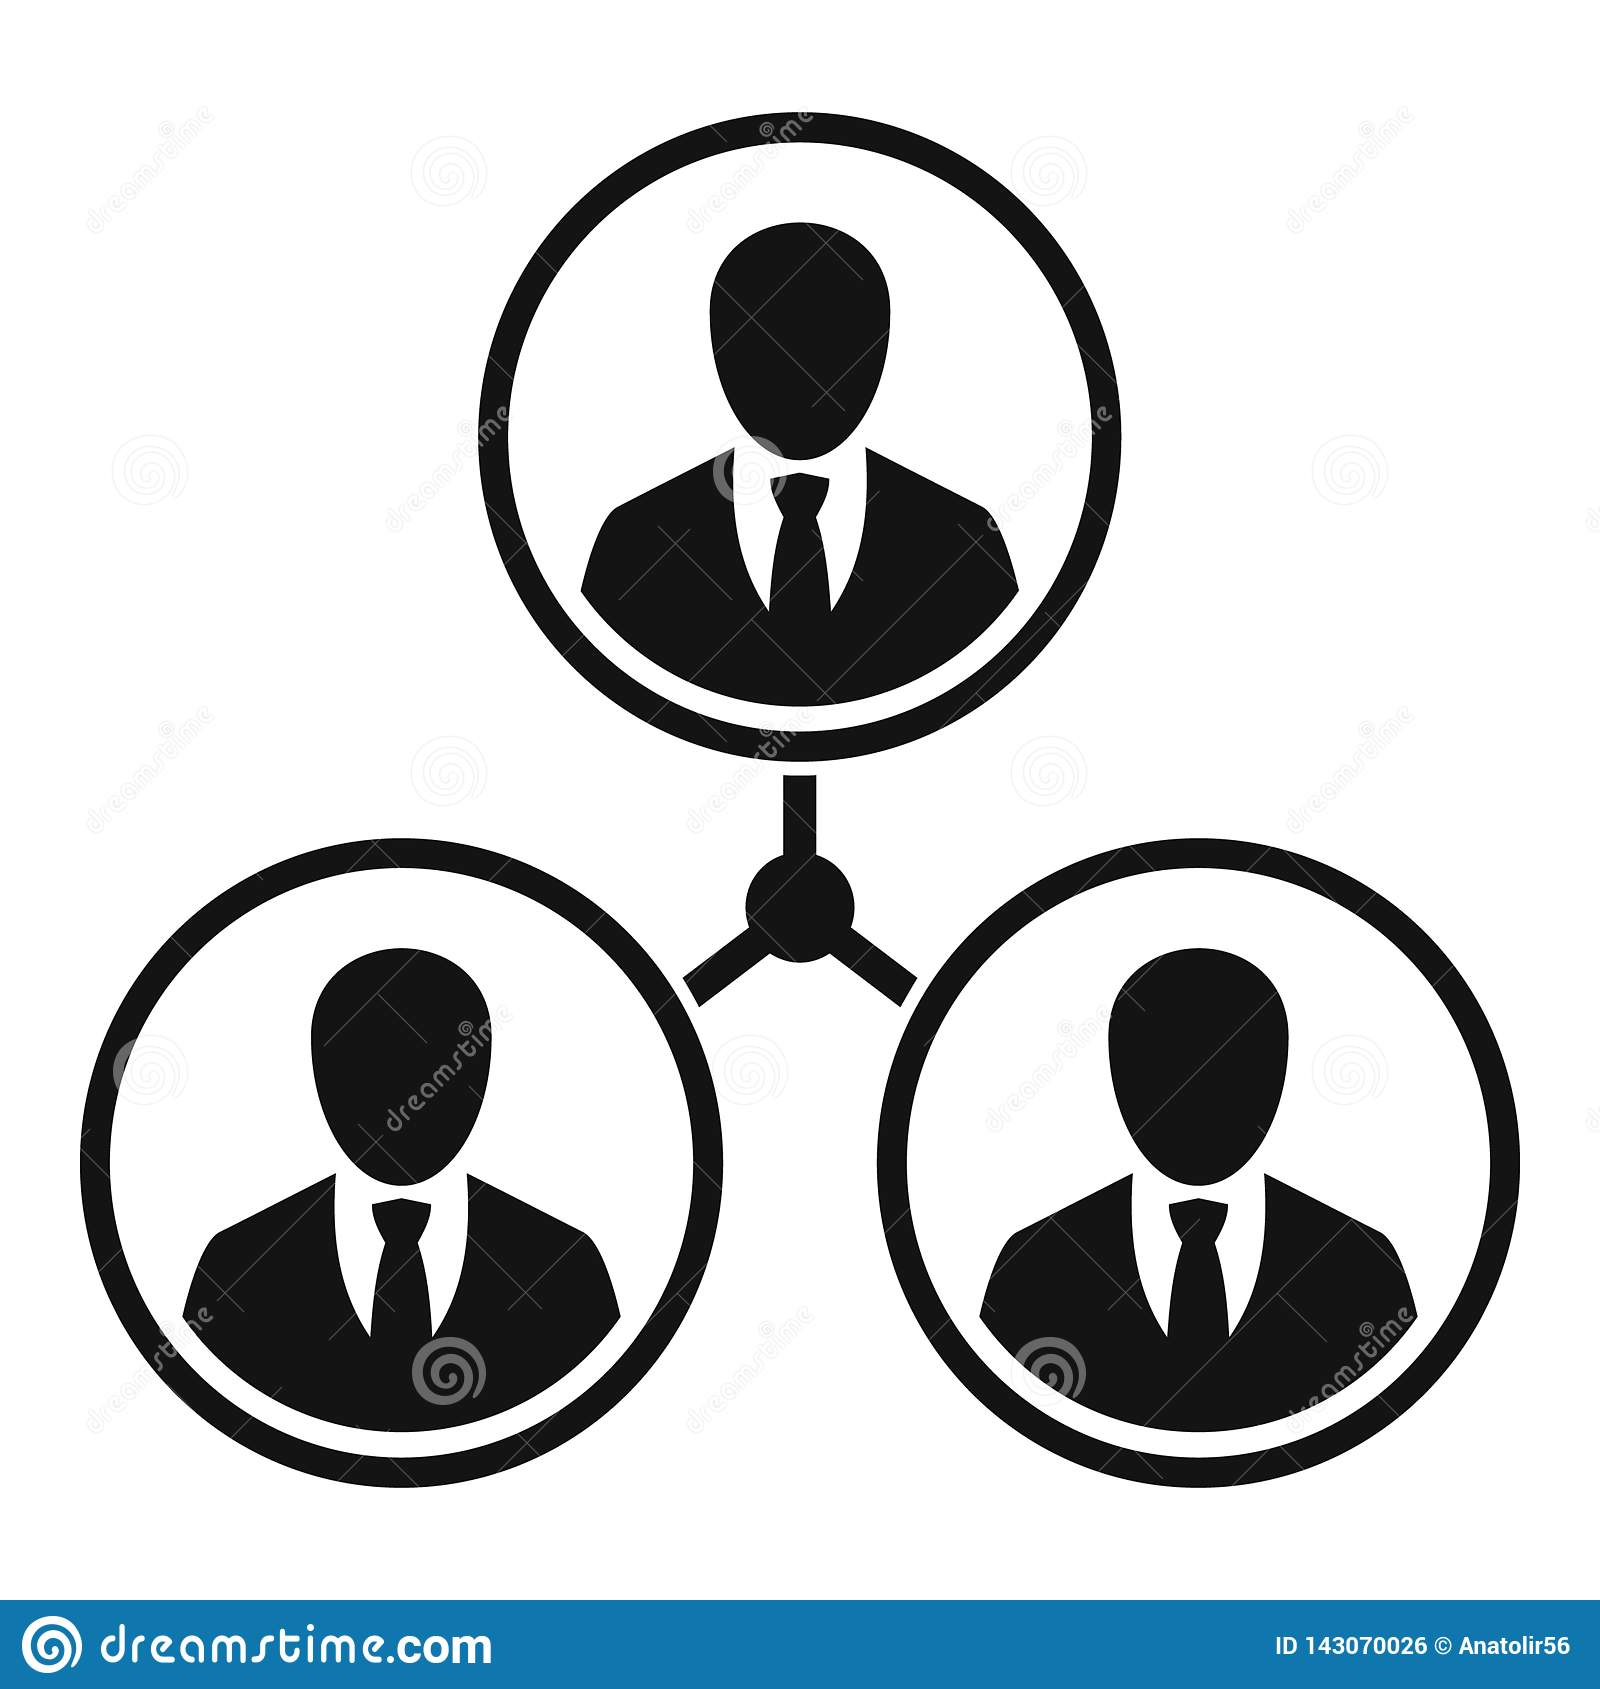 Business people relation icon, simple style